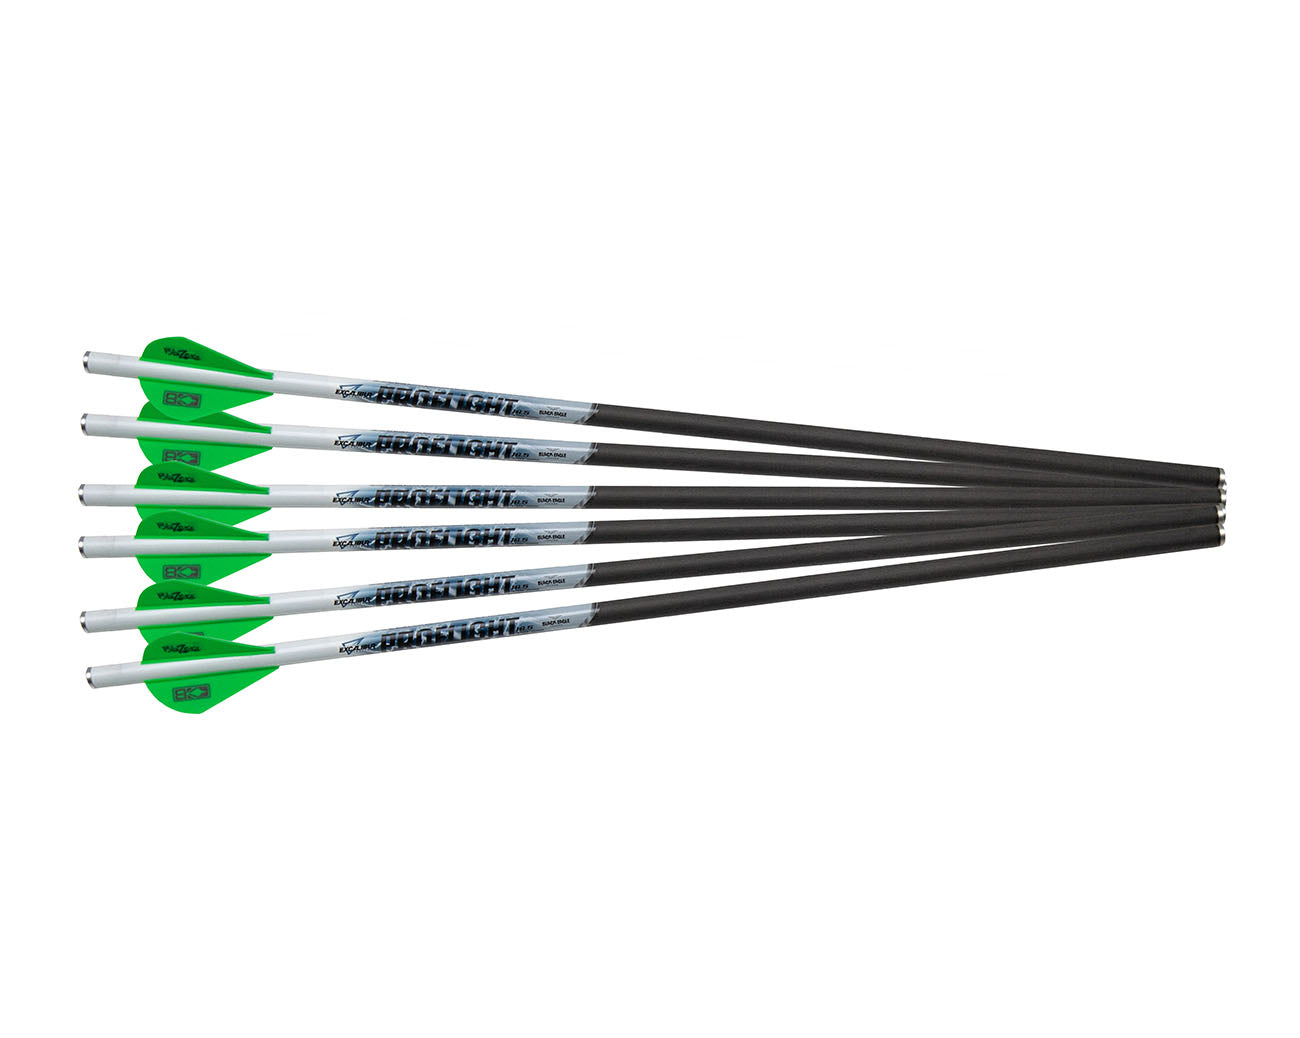 Excalibur Proflight Arrows (6 PACK)